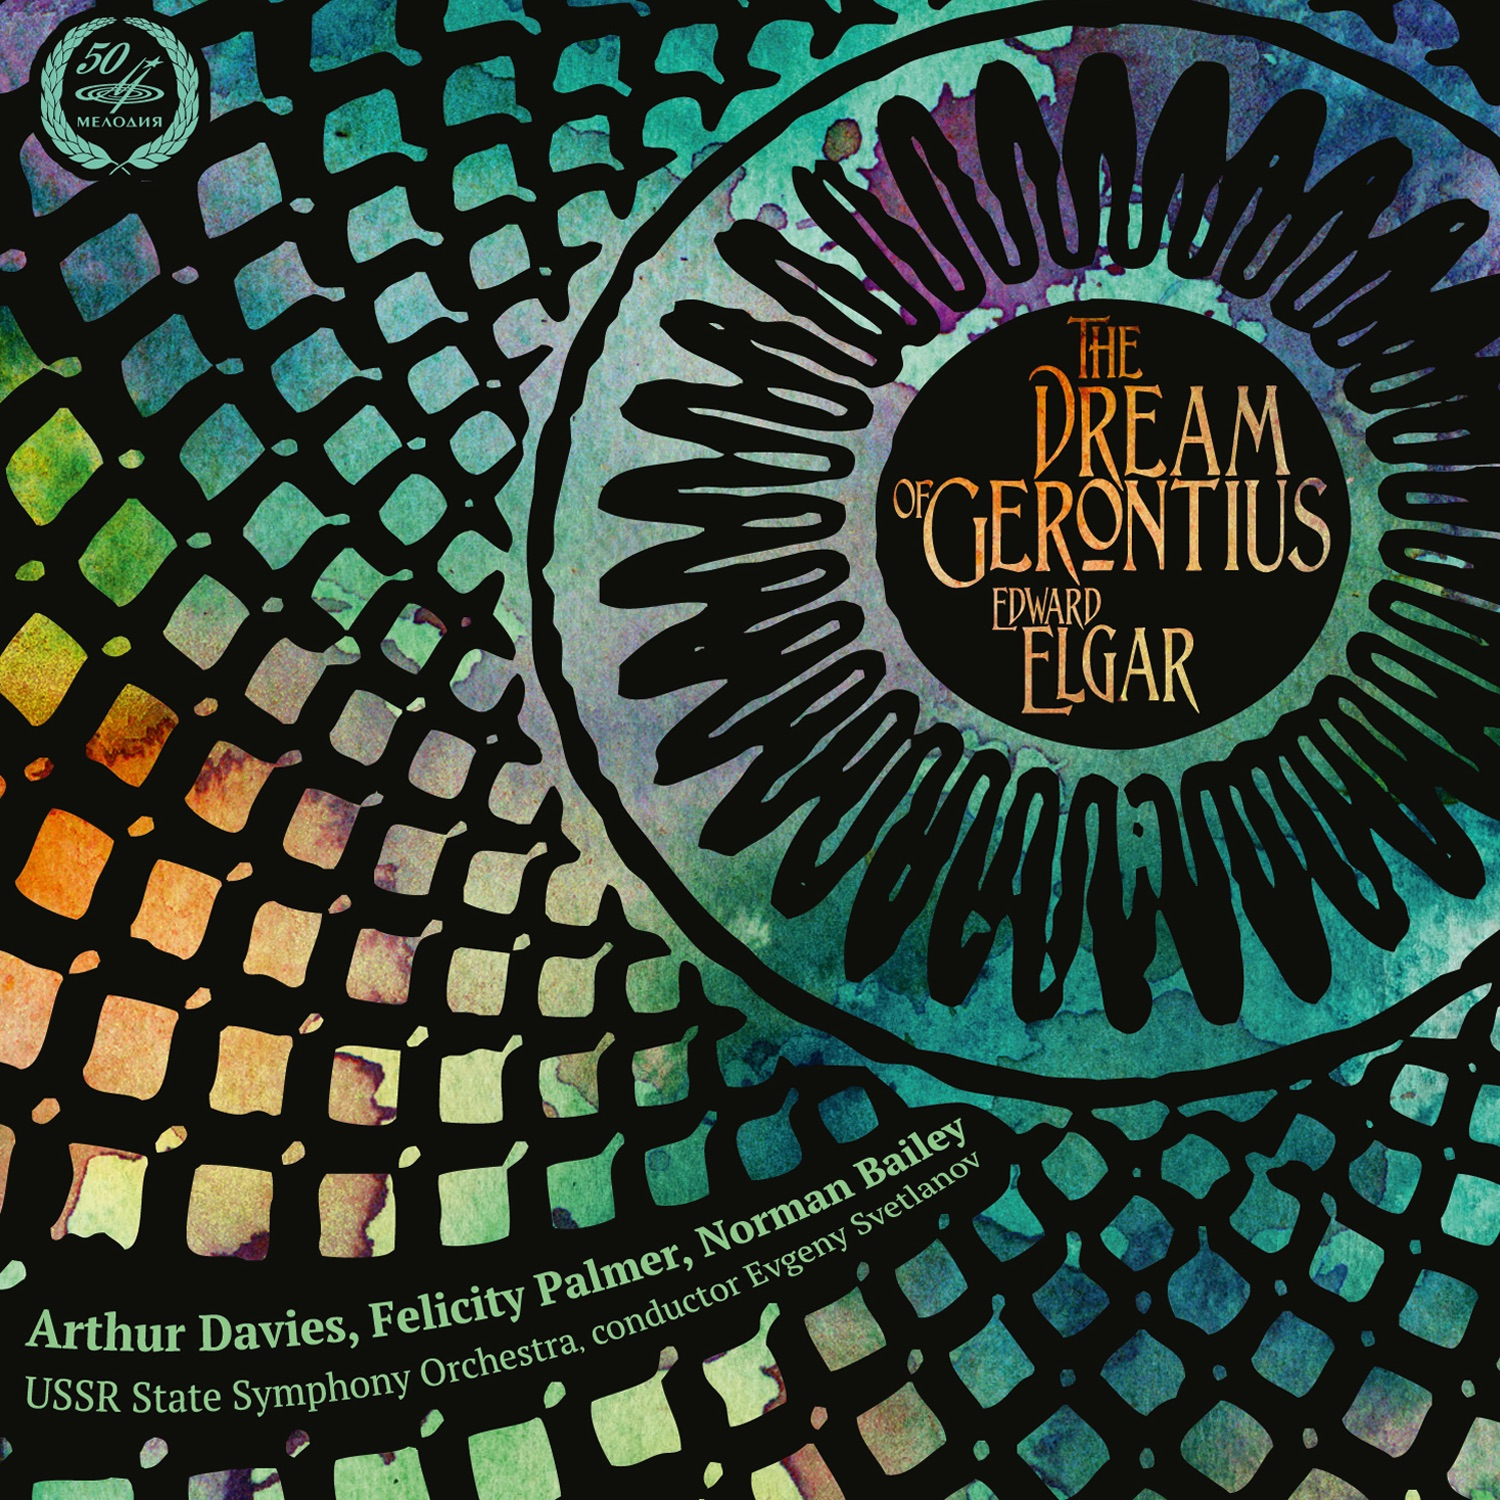 The Dream of Gerontius, Op. 38, Part II: I. I Went to Sleep (Live)